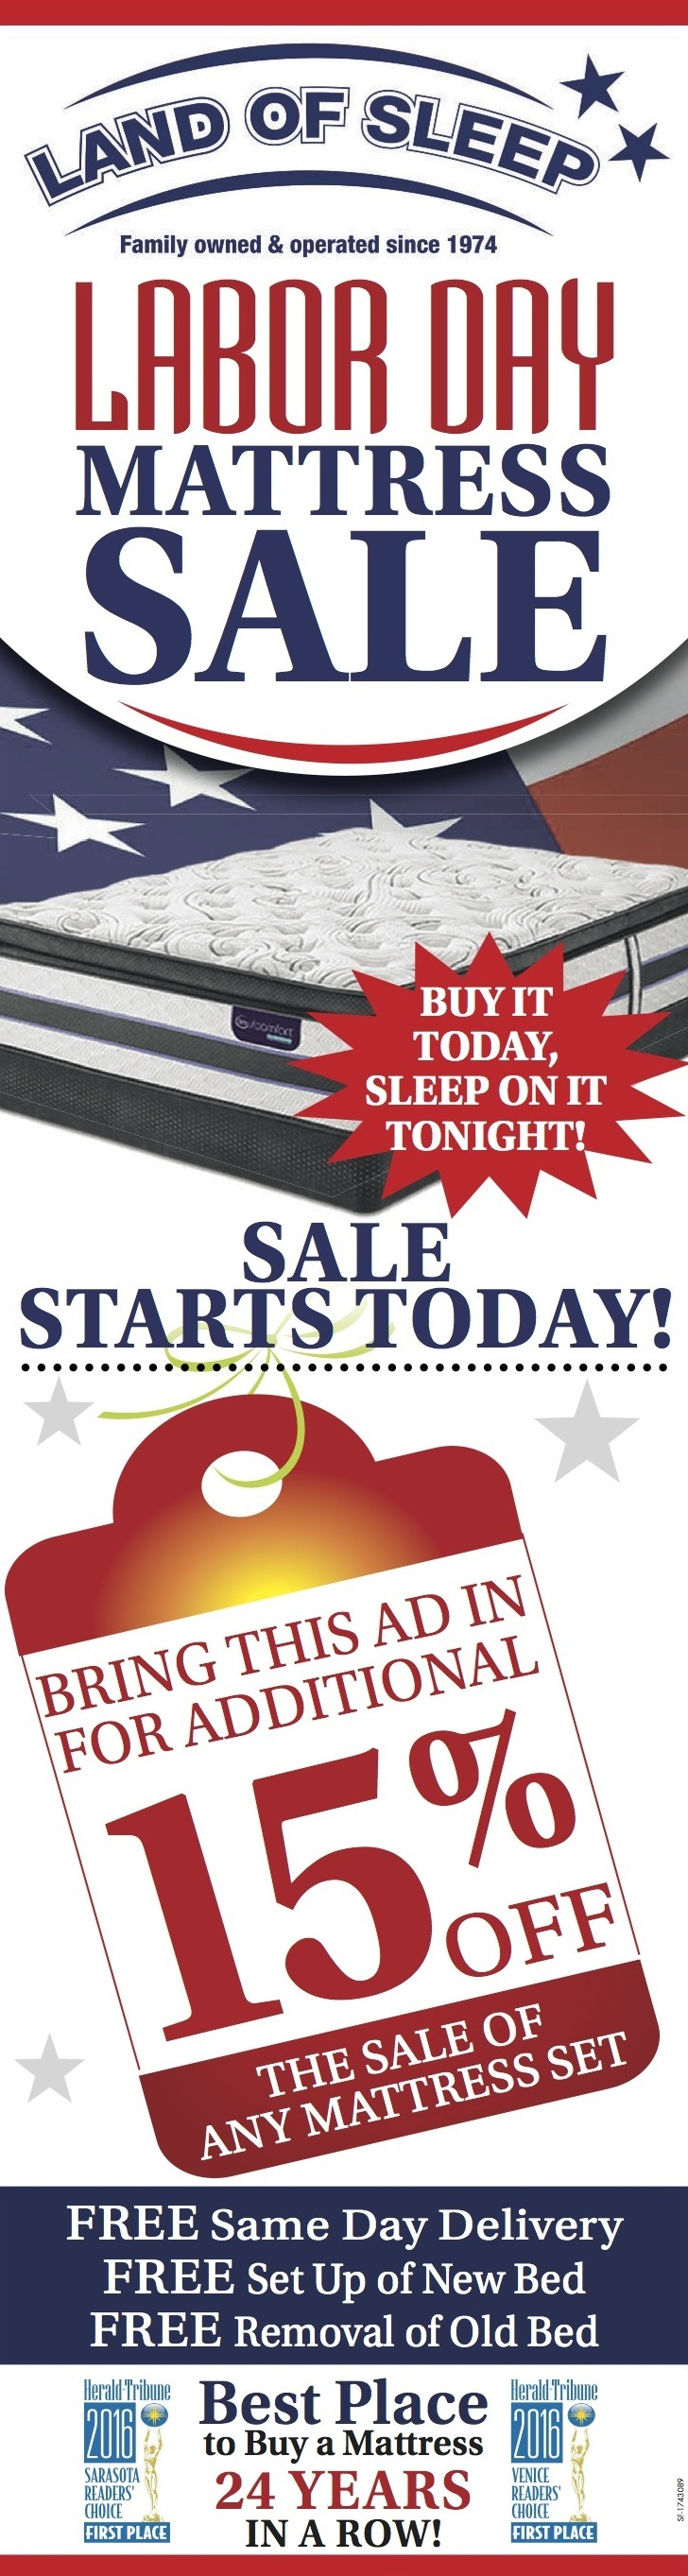 Check Out our Labor Day Mattress Sale!